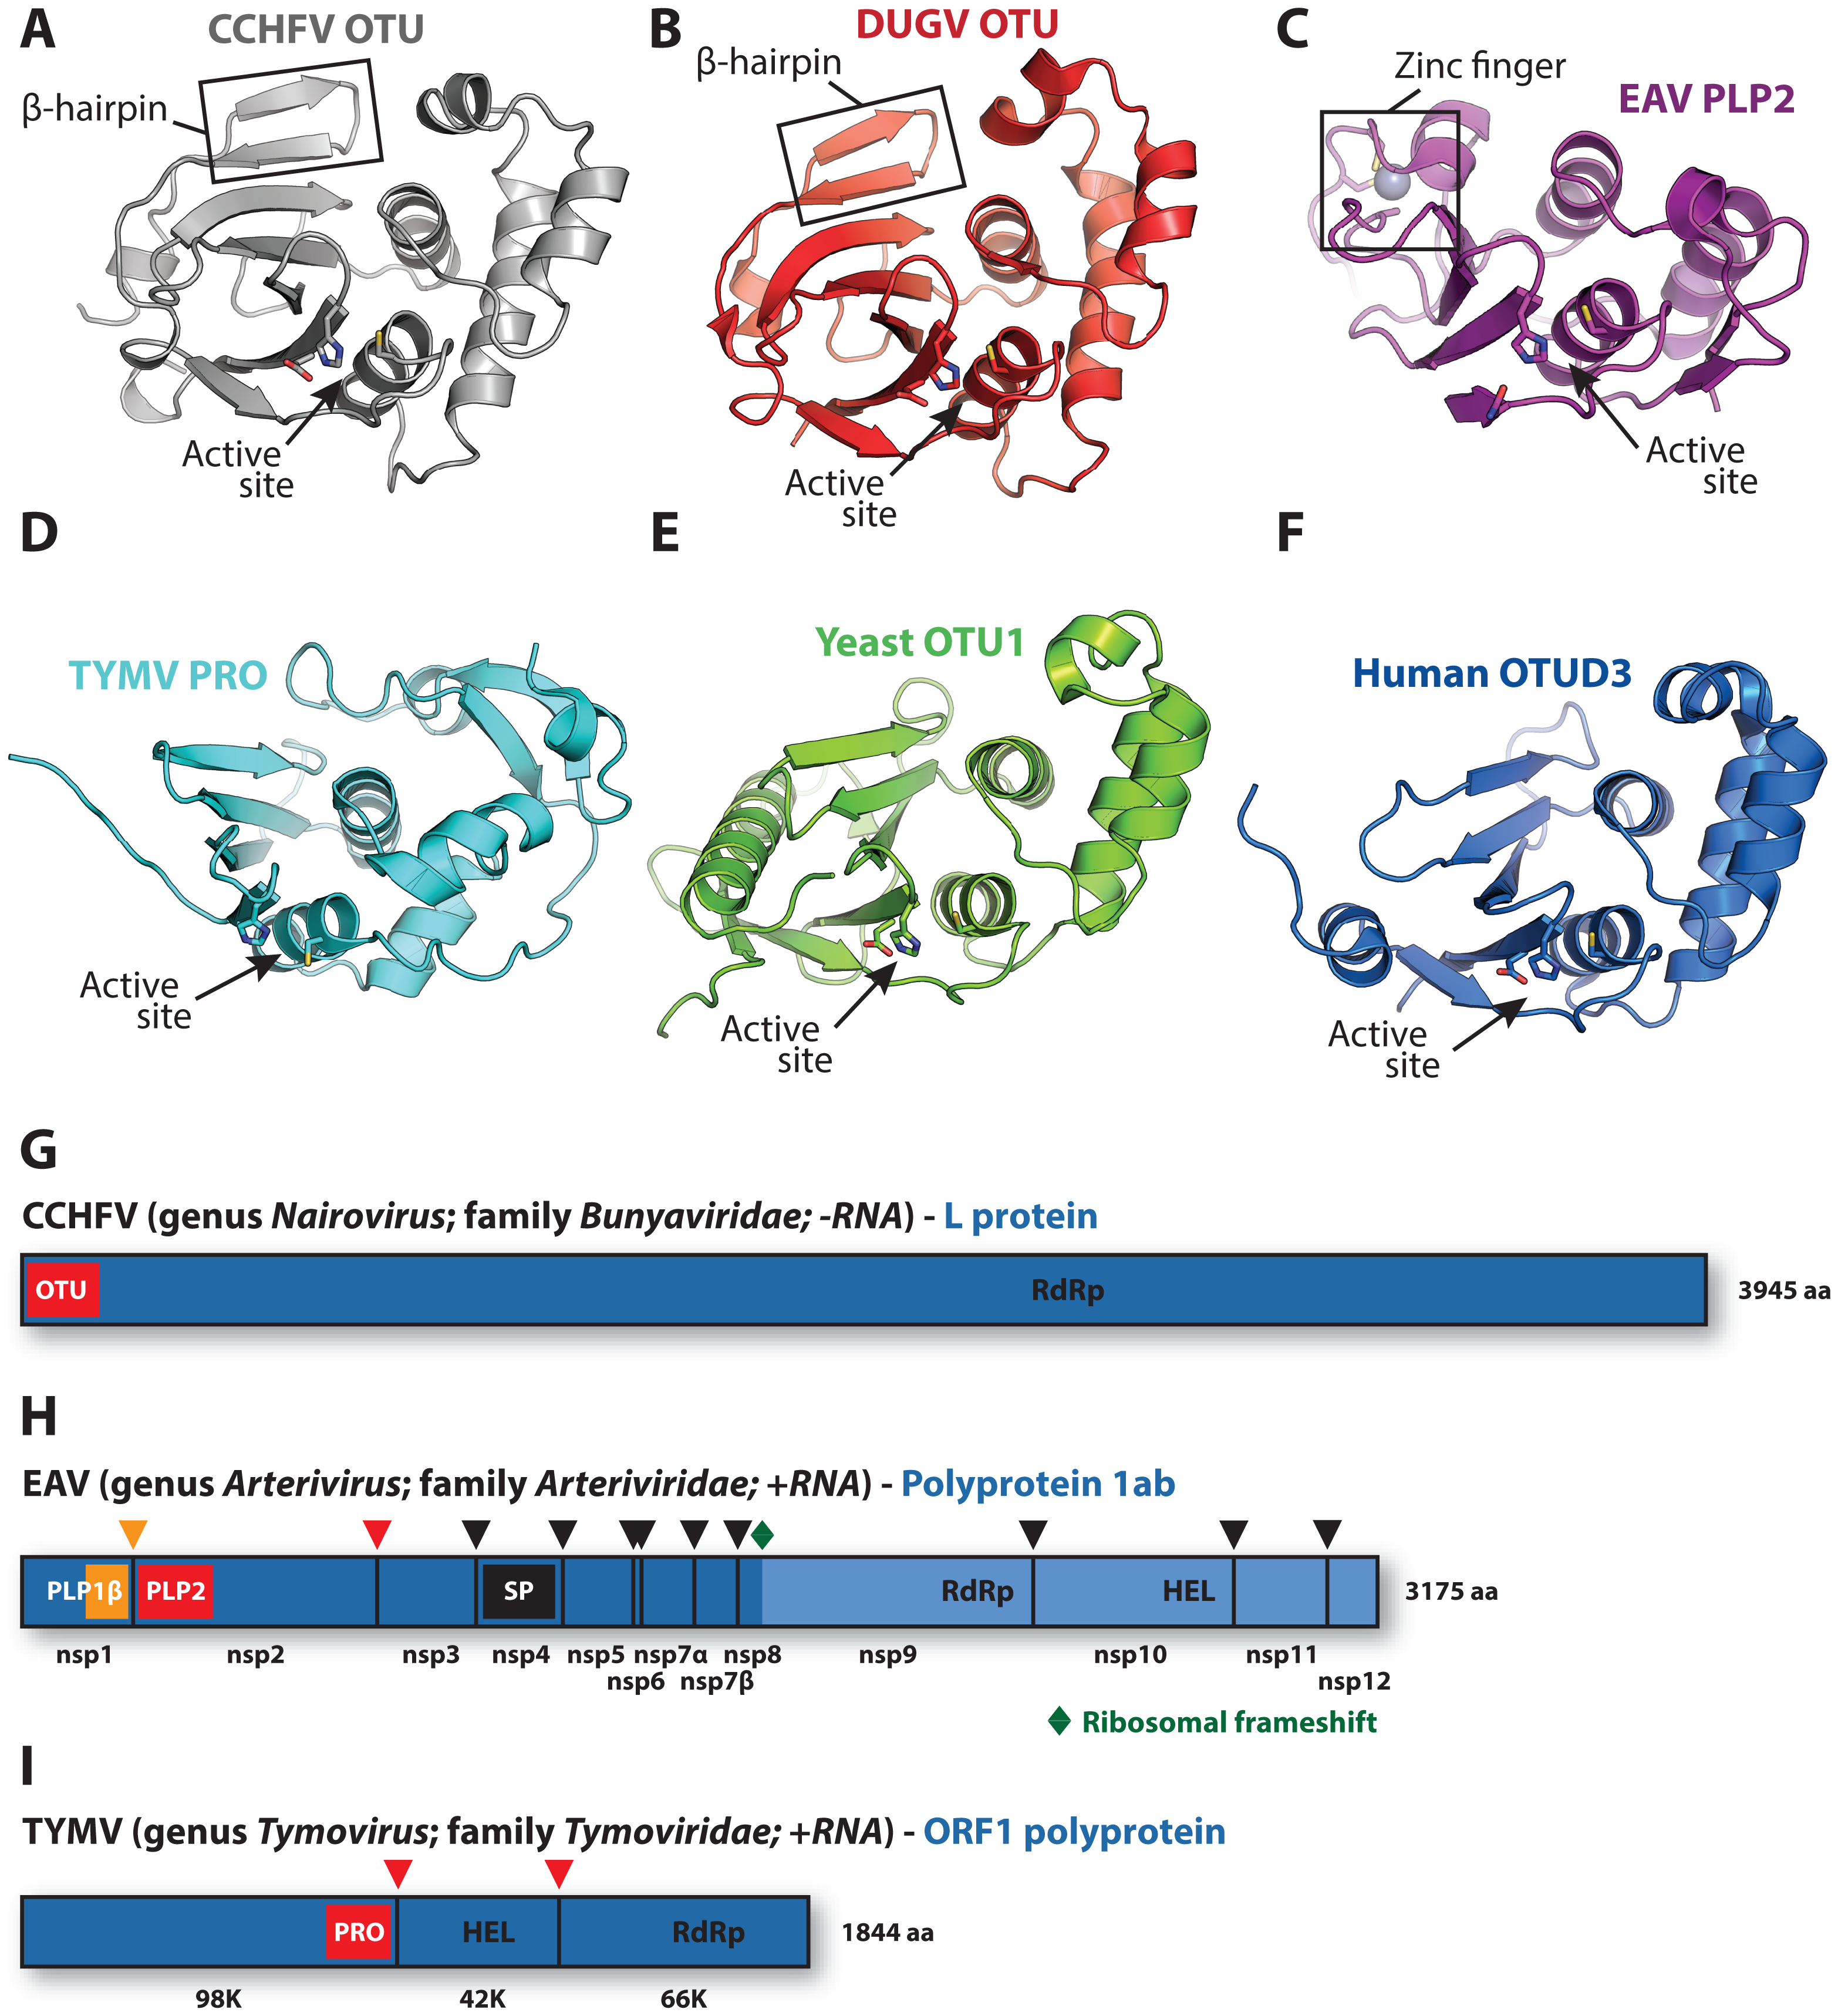 Viral and eukaryotic OTU domain structures and viral protein context.